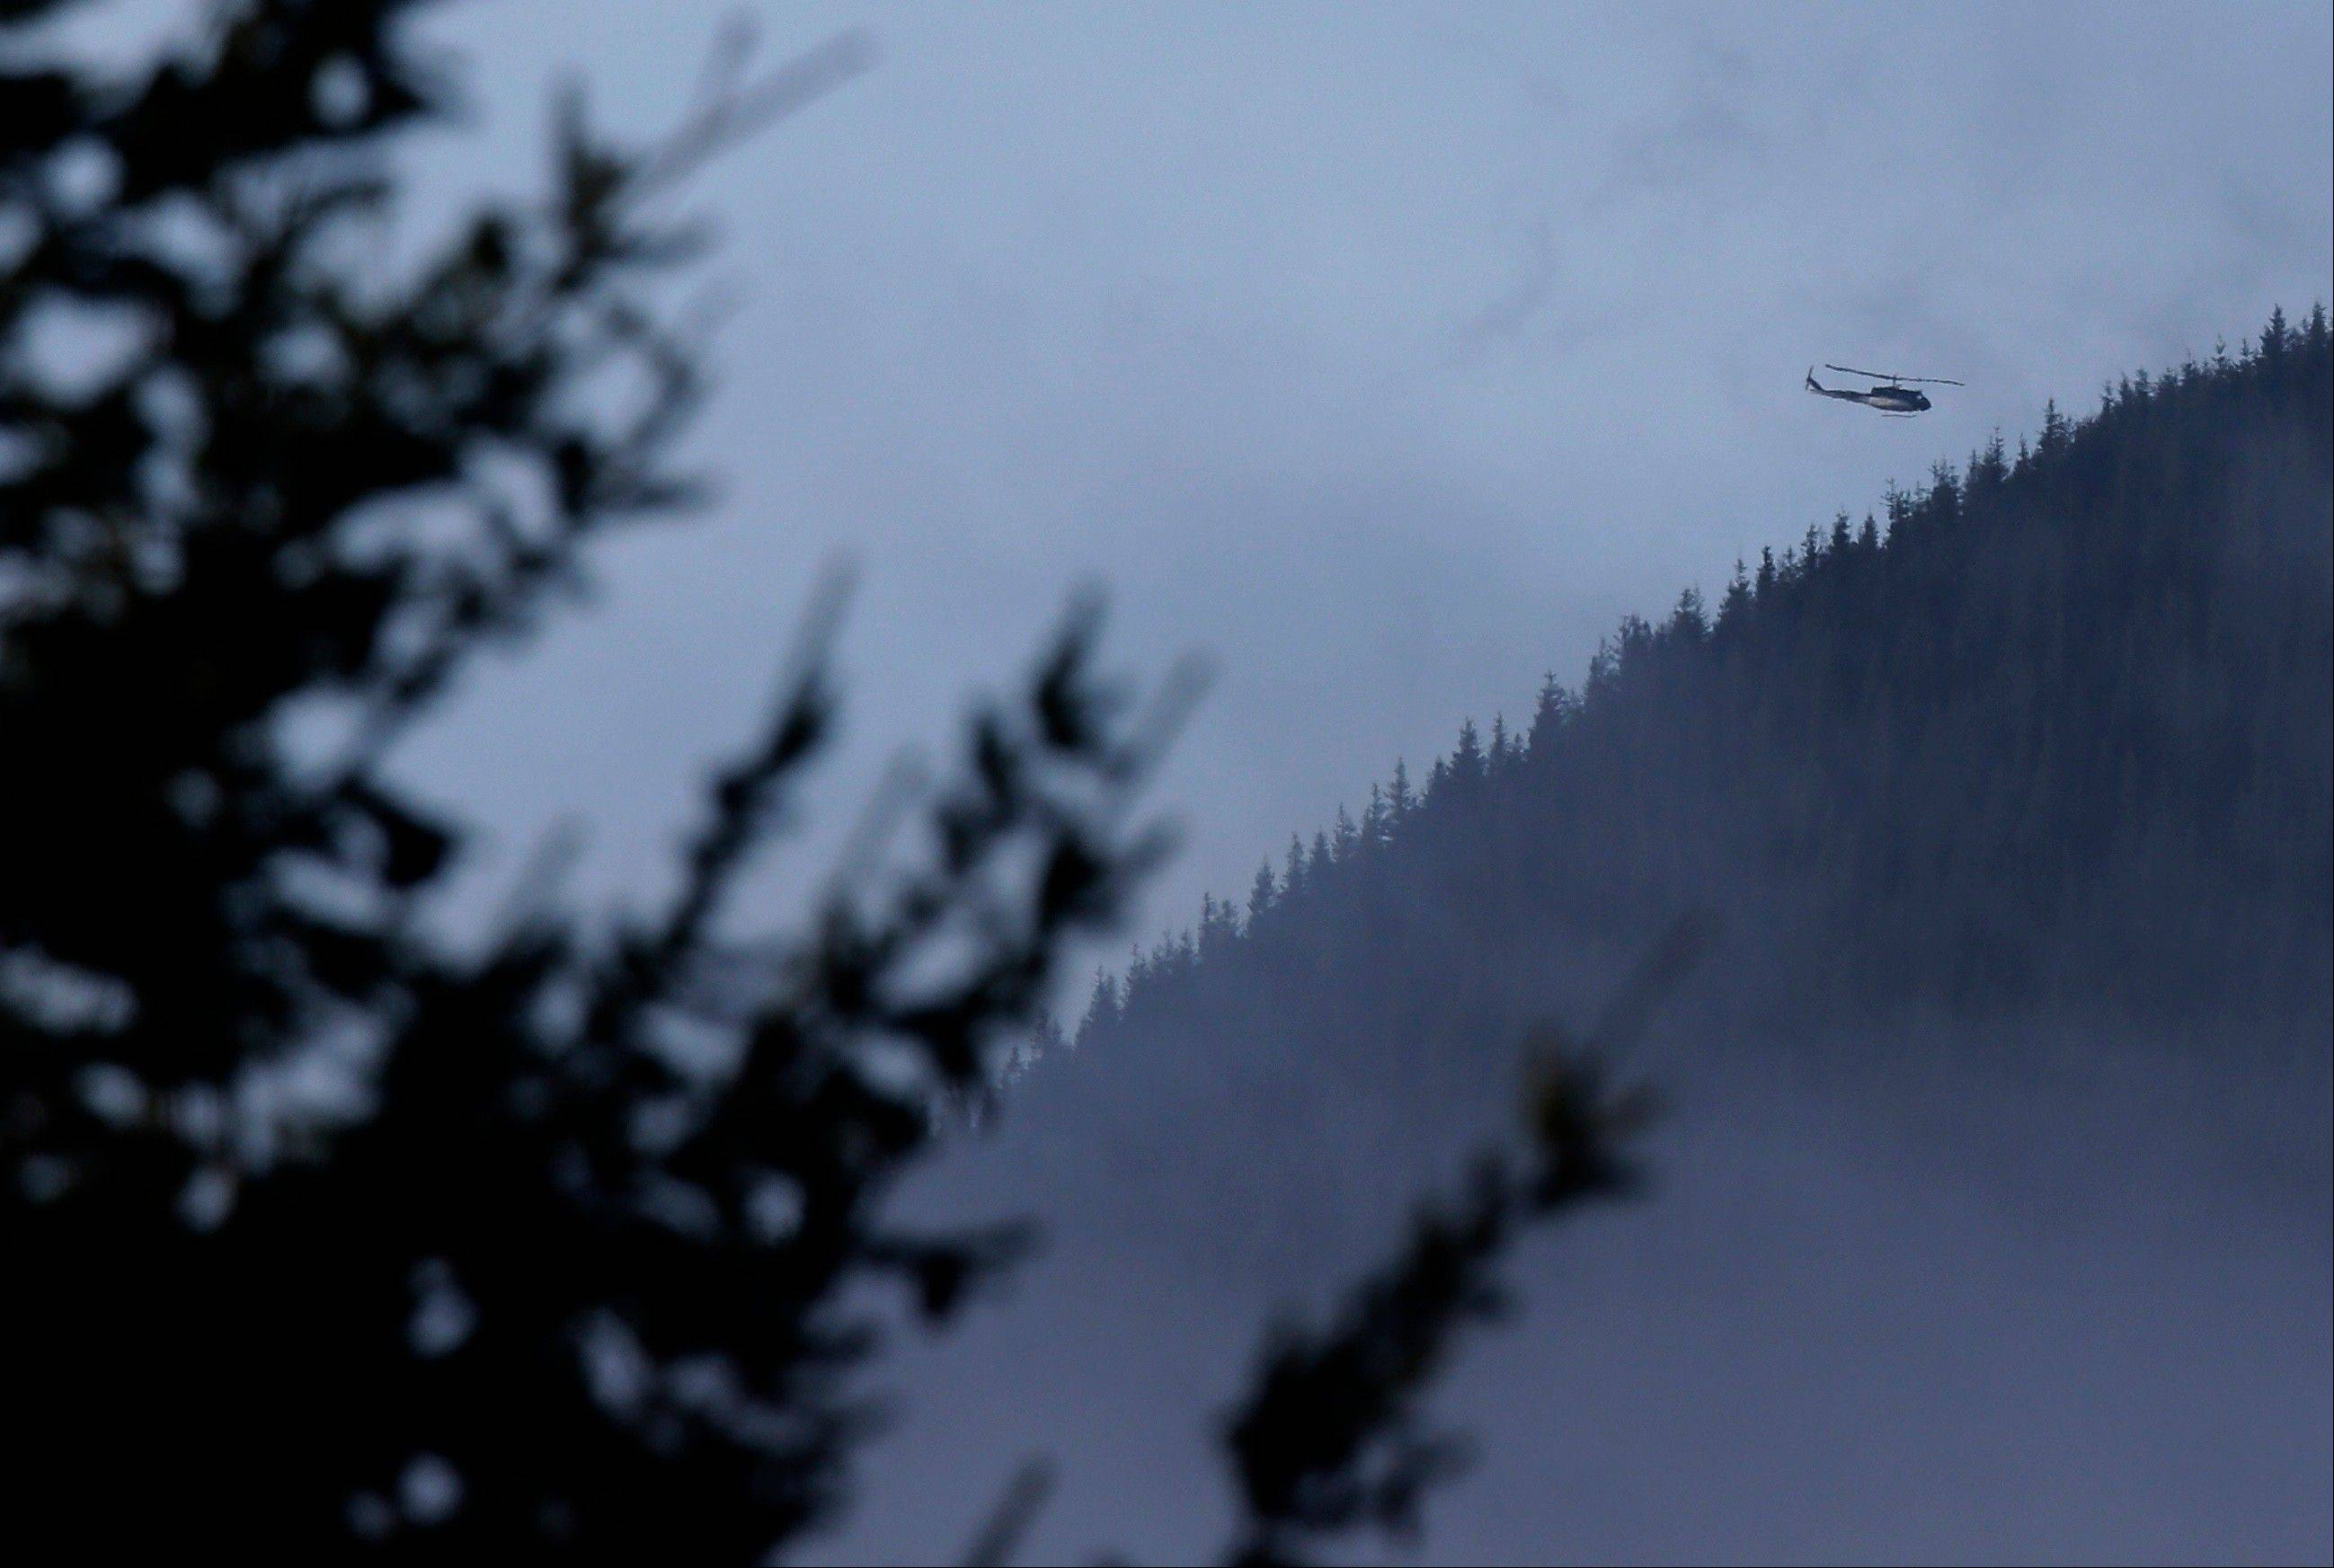 A King County Sheriff�s Dept. helicopter flies Friday over rugged terrain near Mount Si in North Bend, Wash.